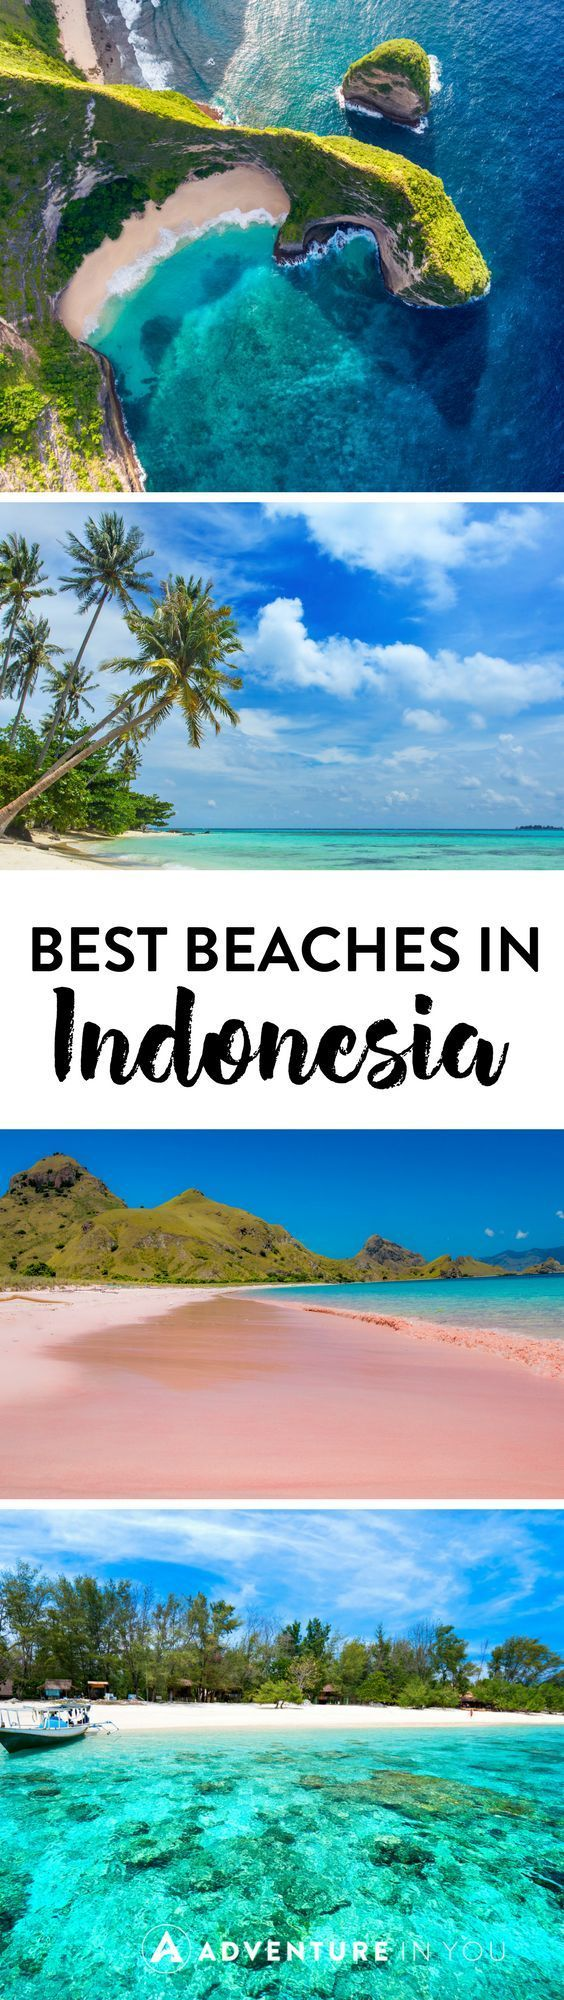 Indonesia Travel   Planning a trip around Indonesia? Check out our list of the best beaches in Bali, Java, all the way to Sumatra!